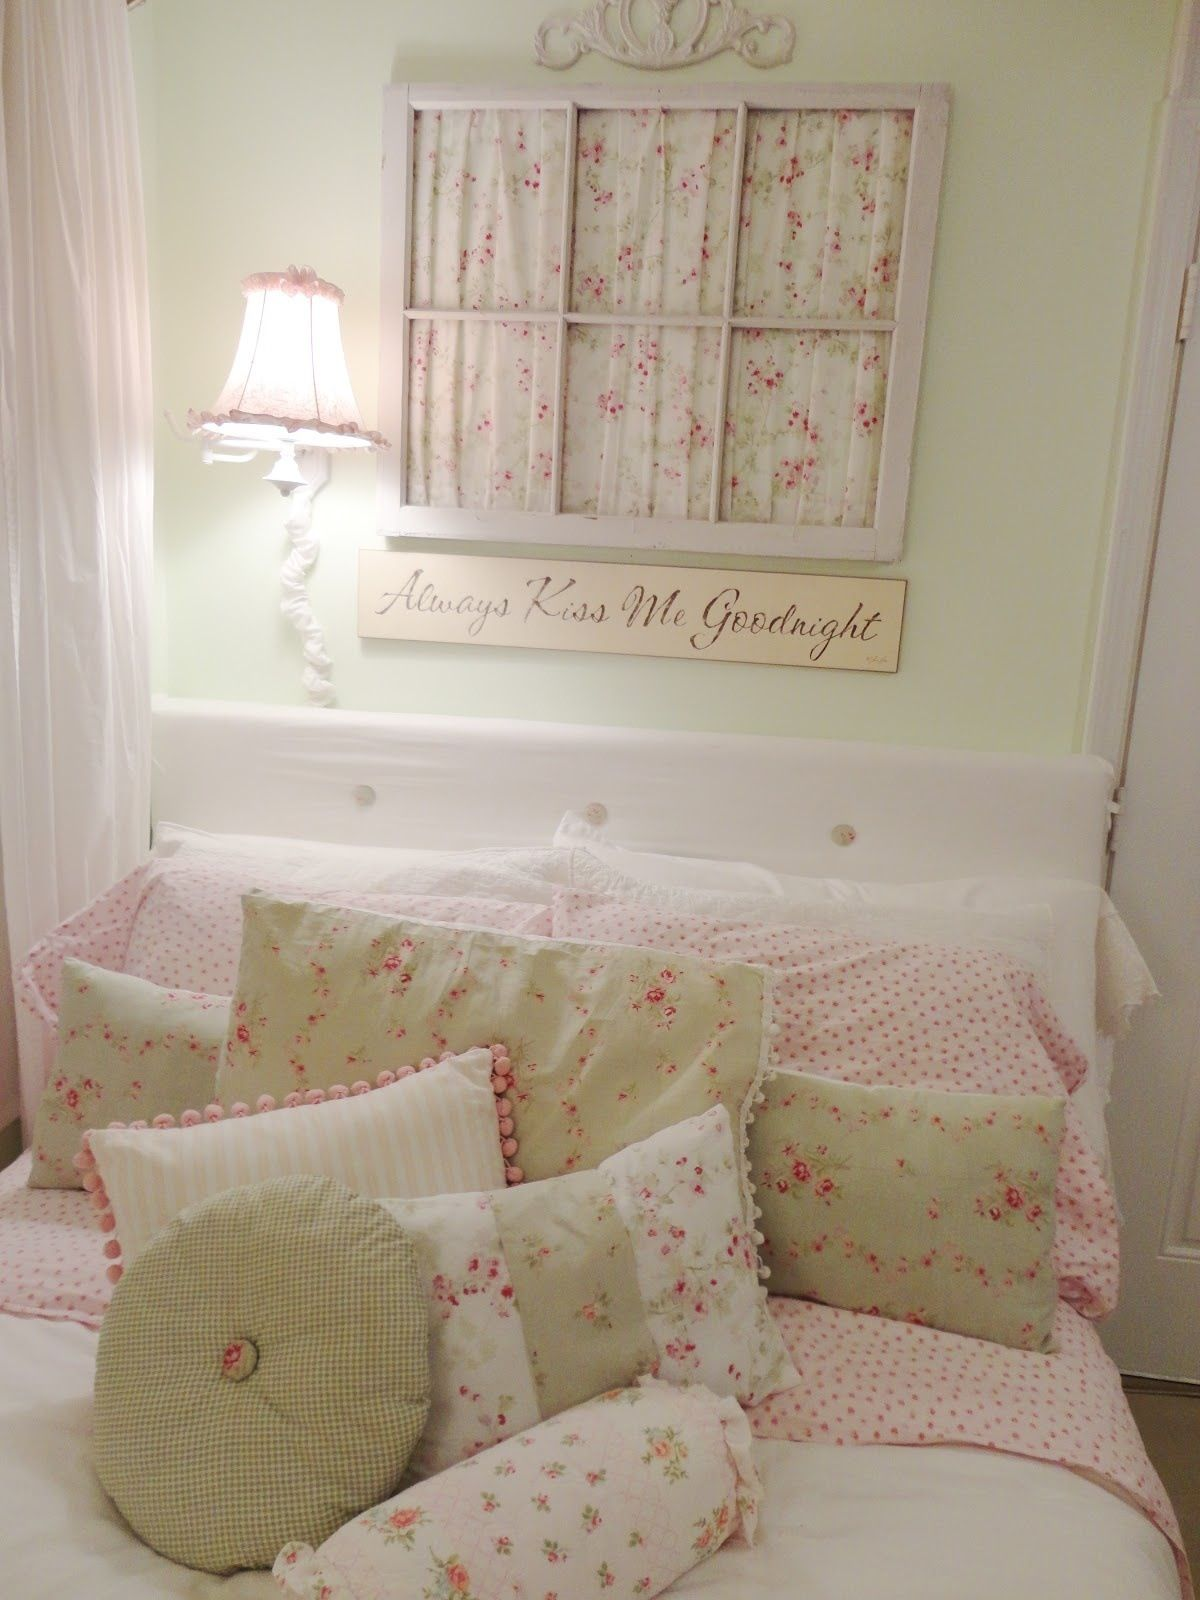 pareti shabby chic : Shabby chic bedroom Decorating/Remodeling ideas Pinterest